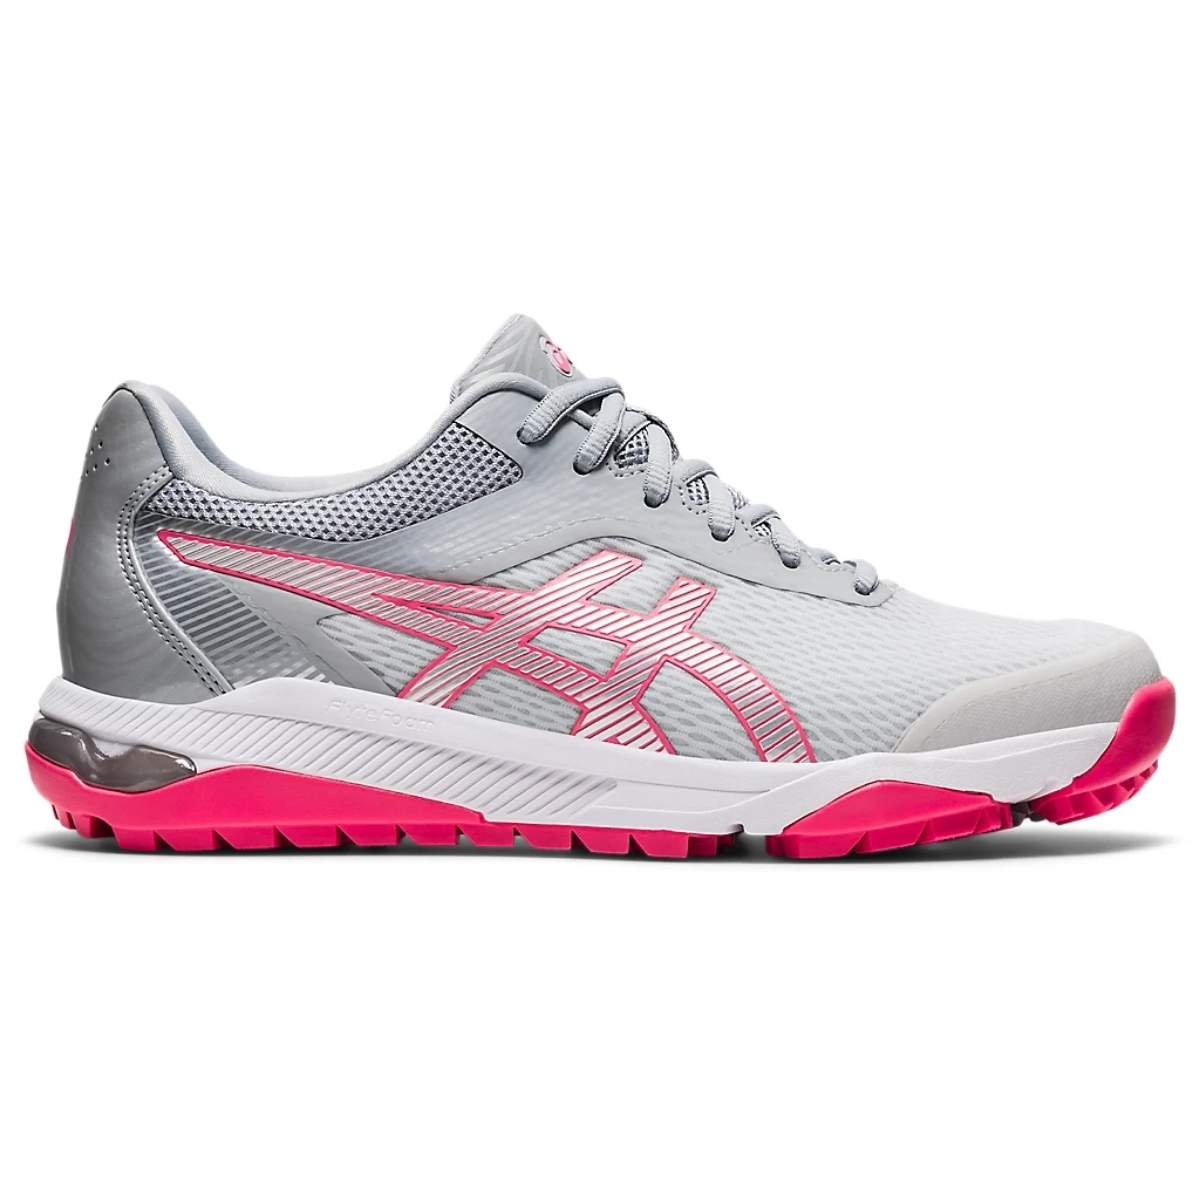 Asics Women's Gel Course Ace Golf Shoe - Glacier